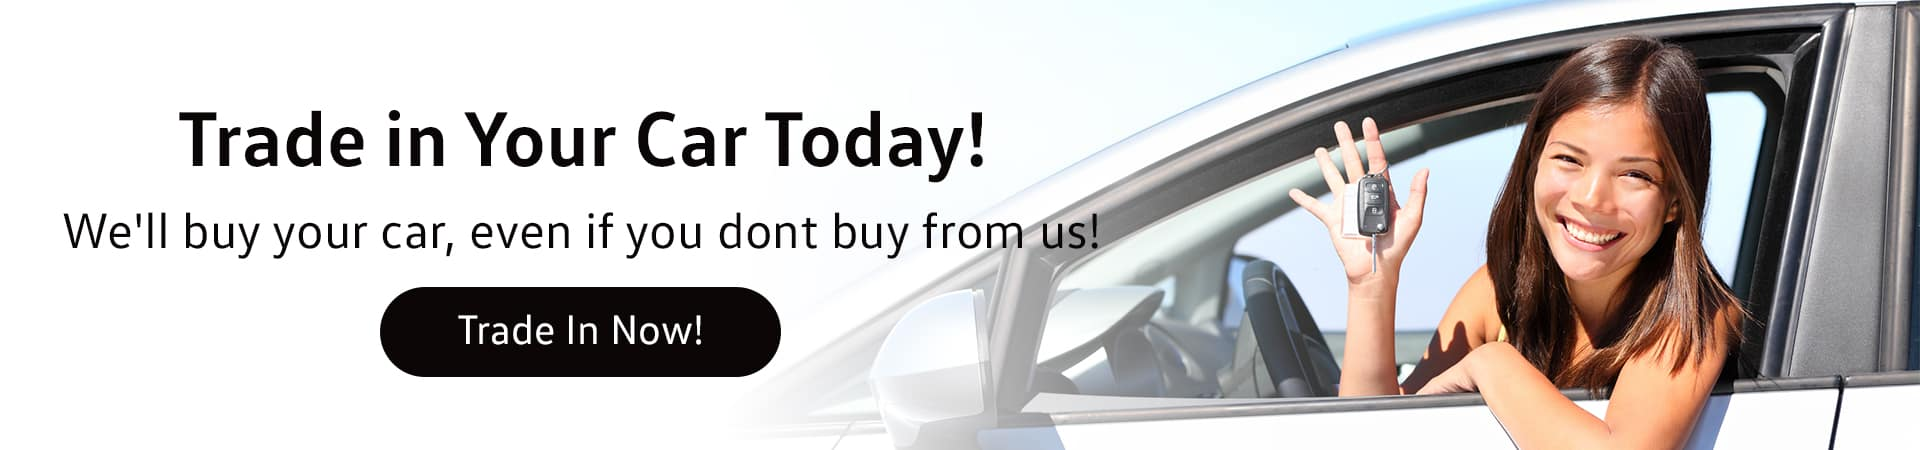 Trade in Your Car Today!, We'll buy your car, even if you dont buy from us!